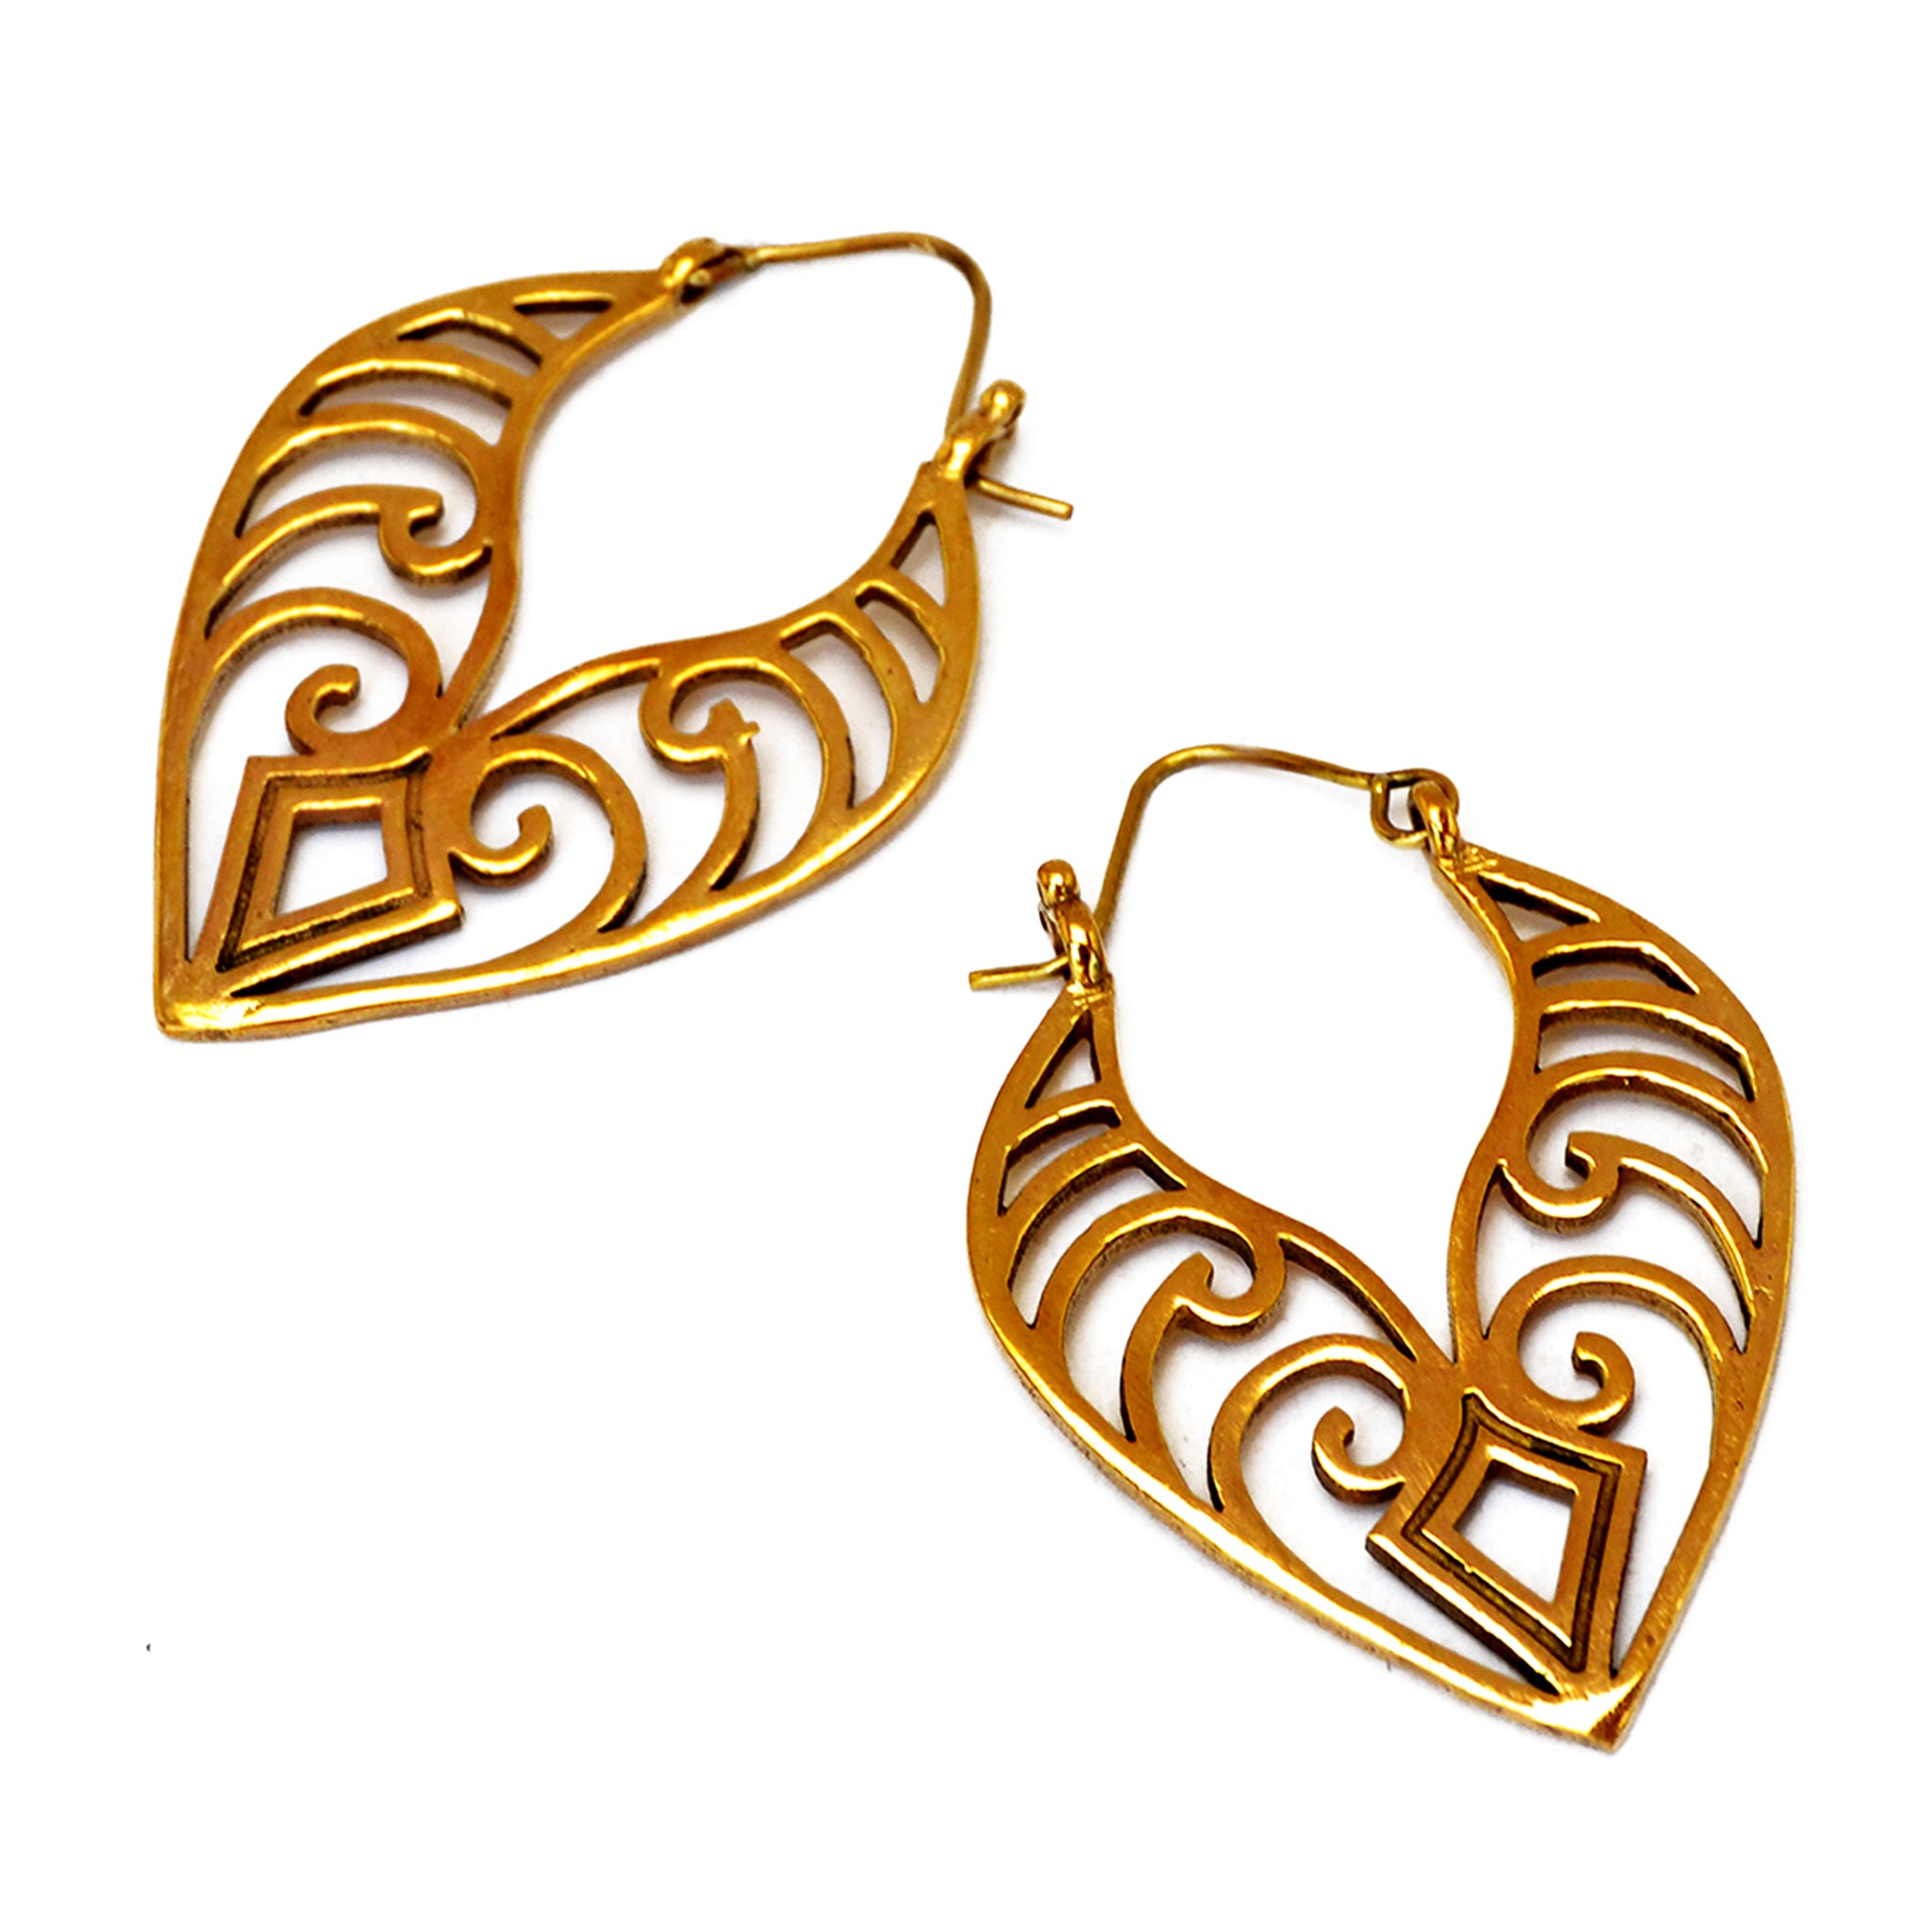 Maori leaf earrings